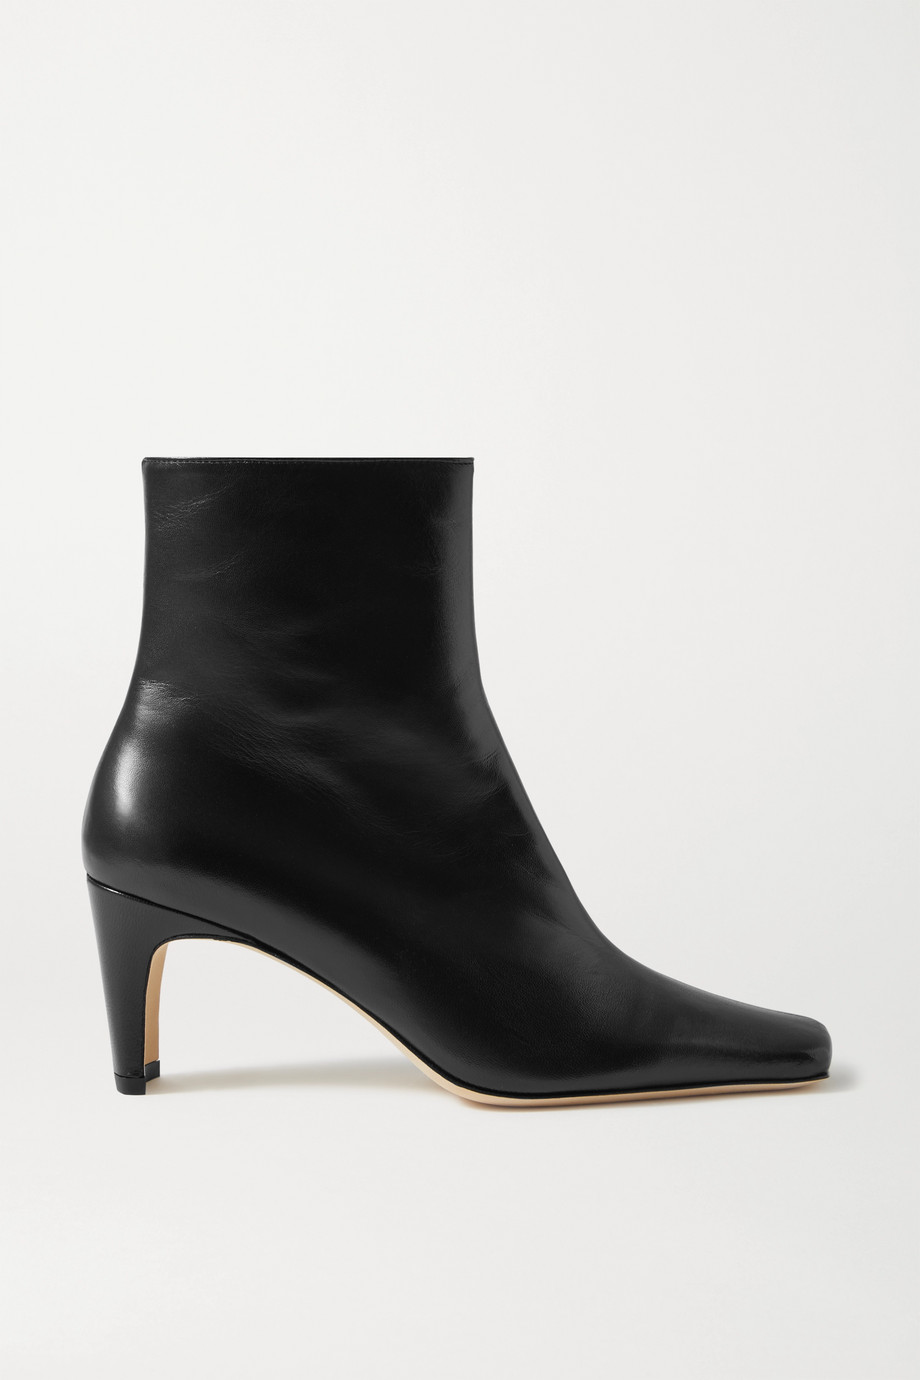 STAUD Eva leather ankle boots